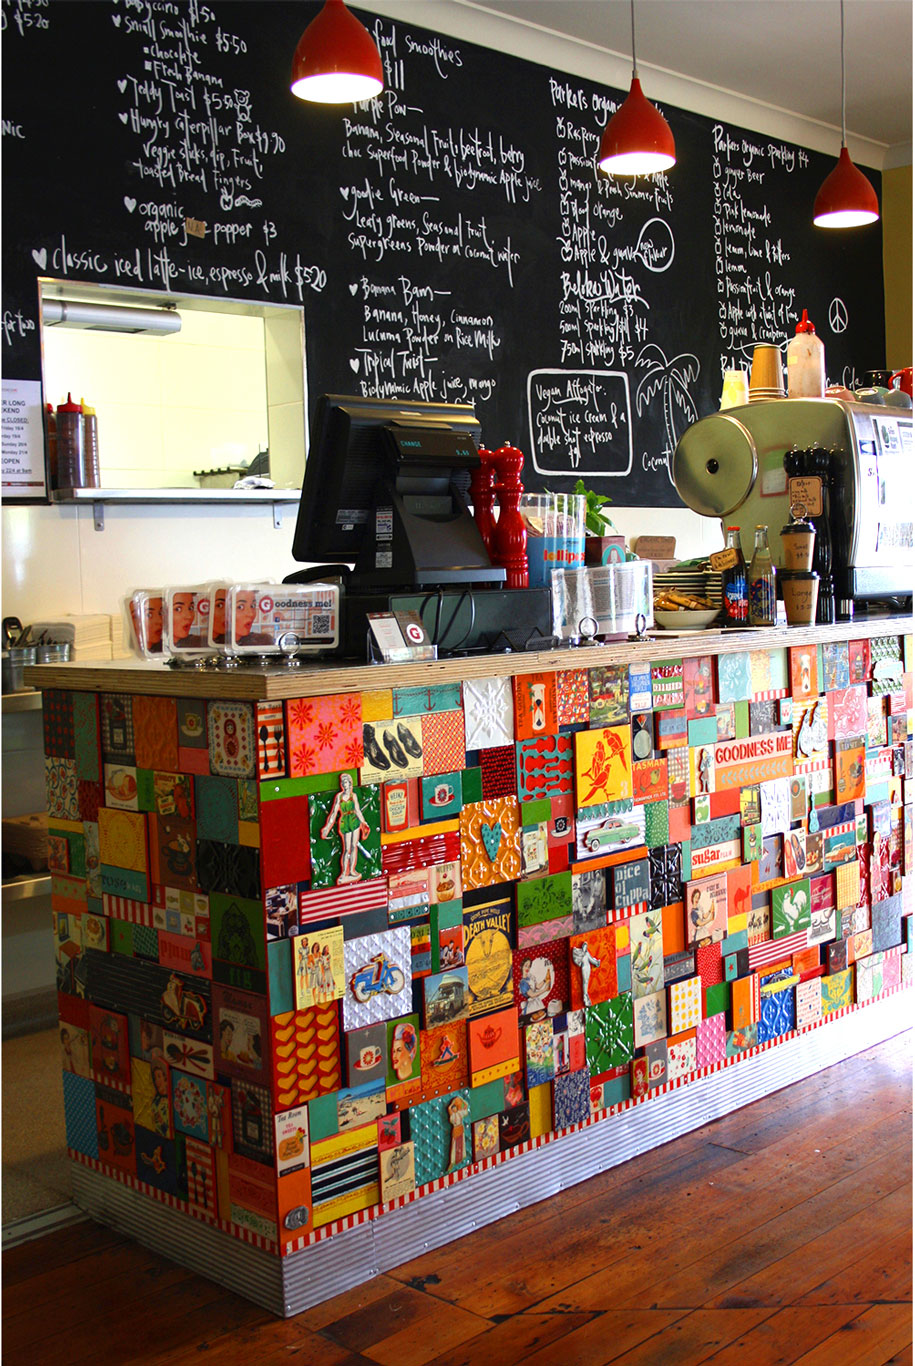 NEWCafe-Counter-2-Bespoke-Surface-Design-The-Strutt-Sisters